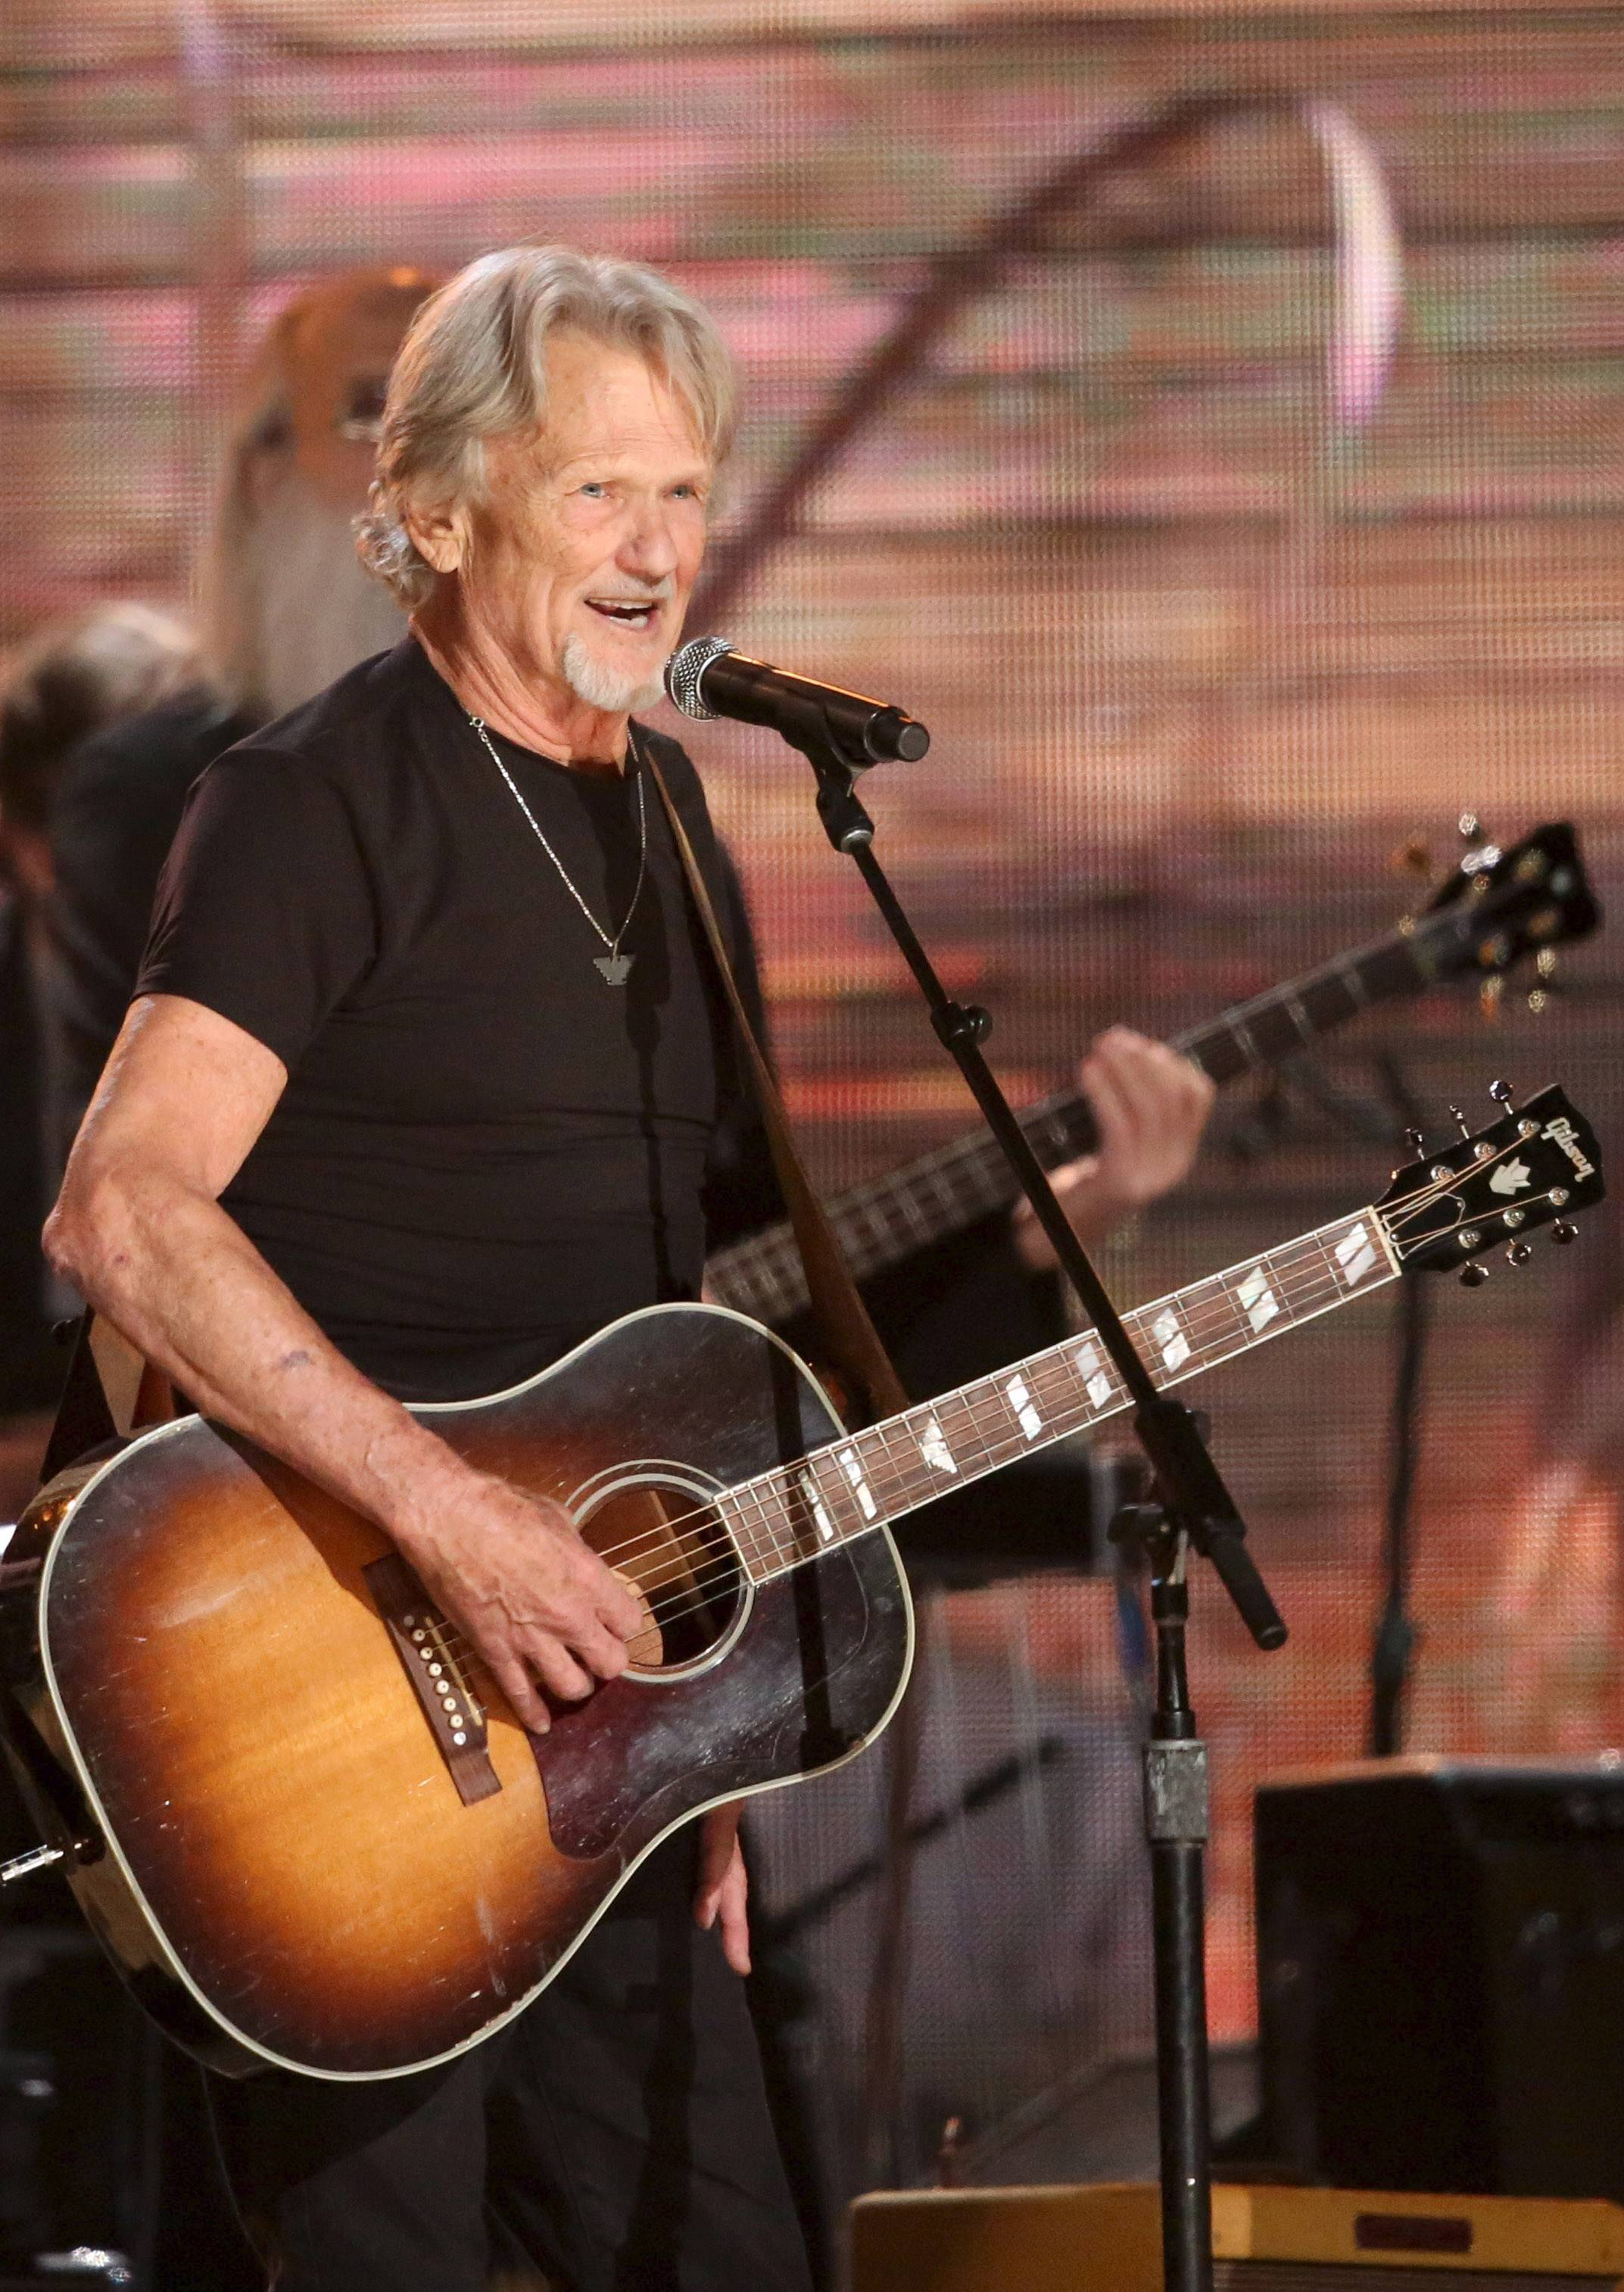 Kris Kristofferson performed last month at the 56th annual Grammy Awards. At 77, he's starting a new tour.